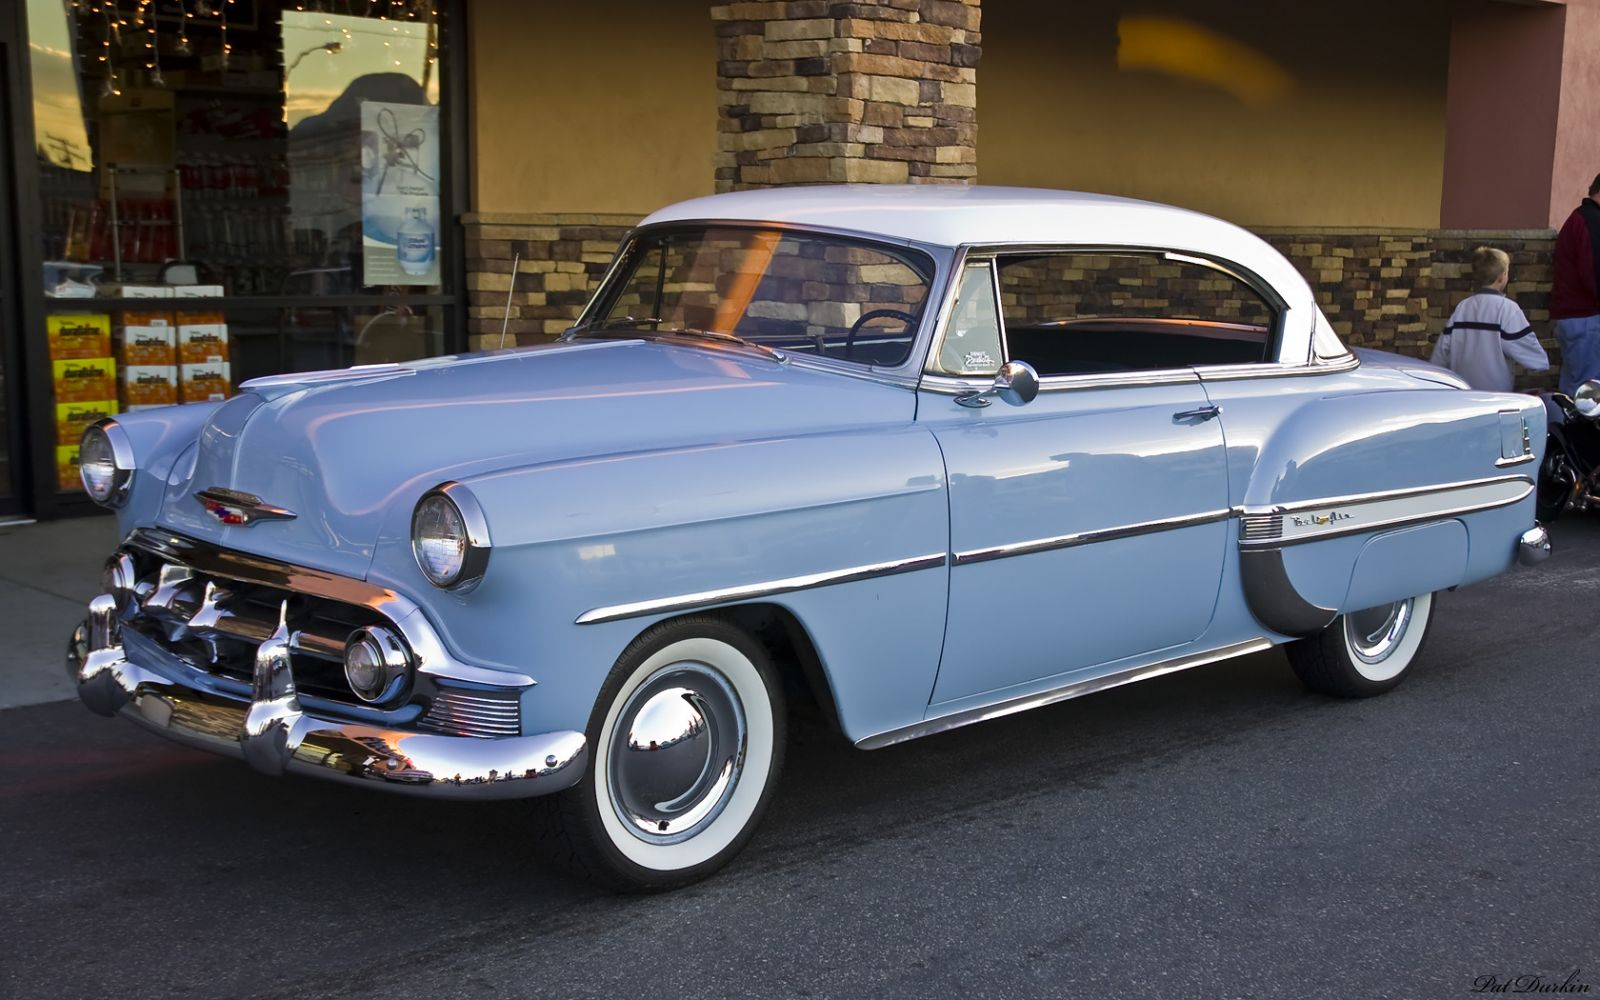 1953 chevrolet bel air ht white over light blue fvl